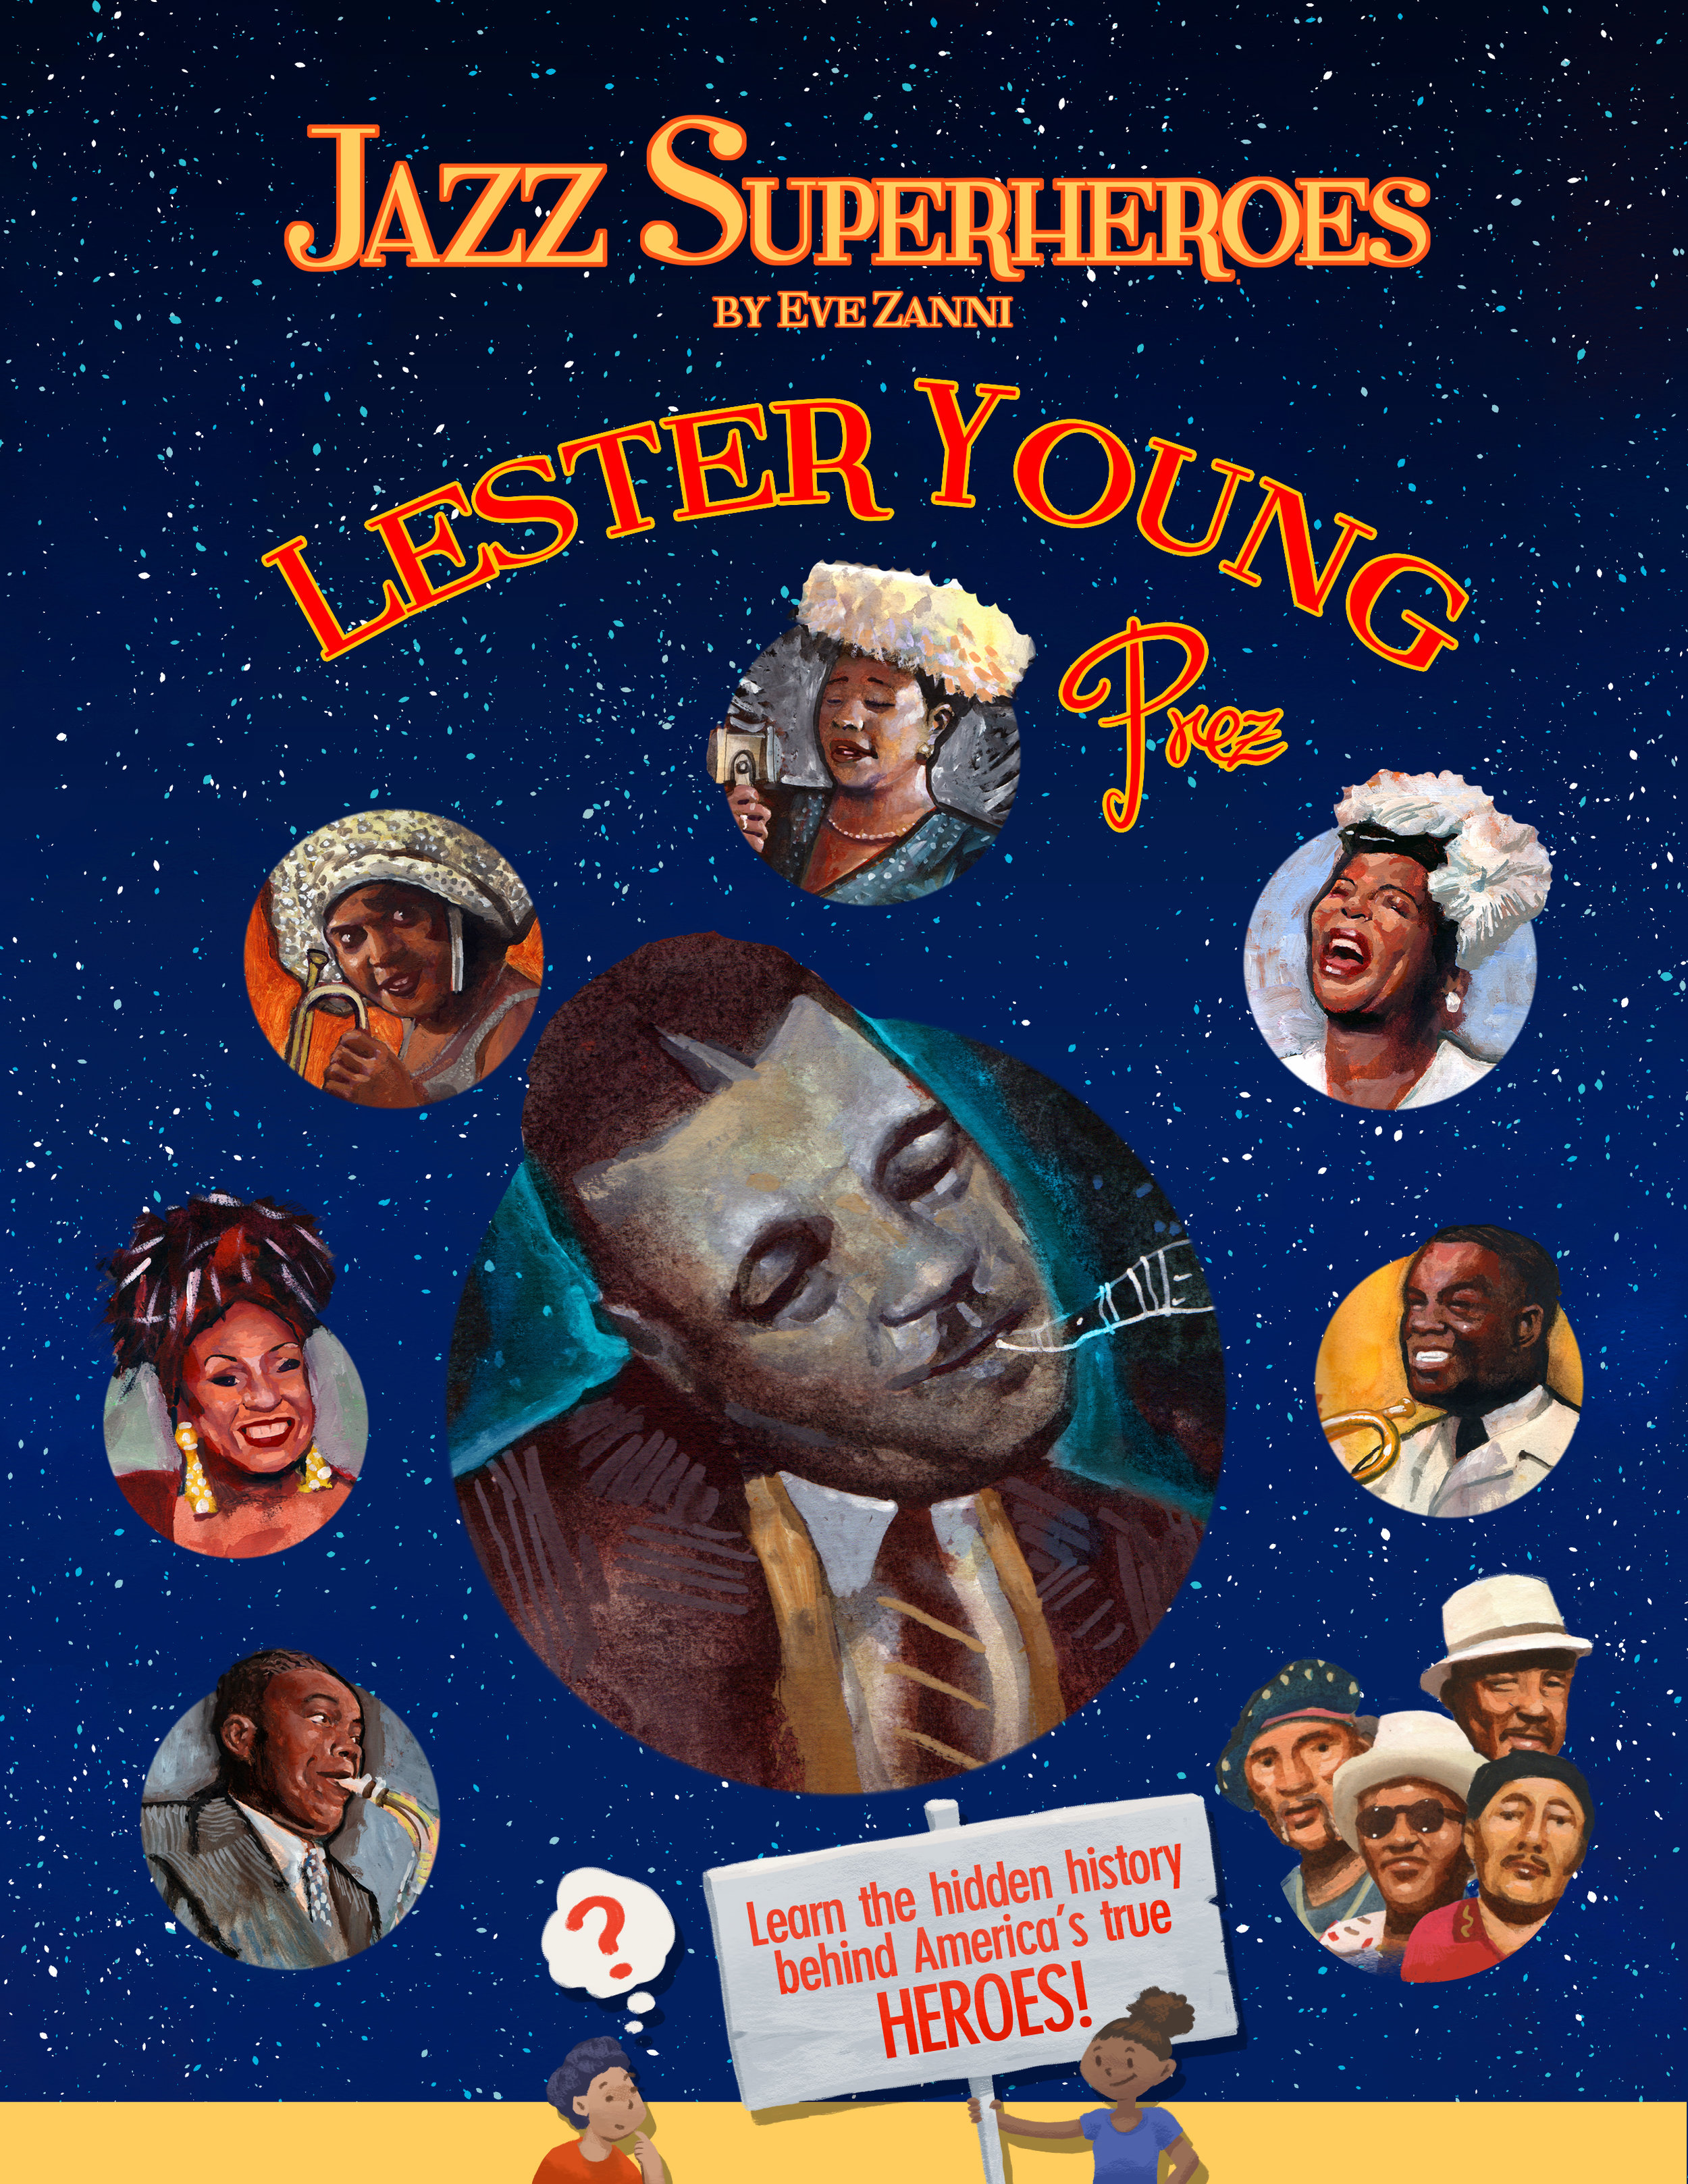 Jazz Superheroes By Eve Zanni is a book about Lester Young